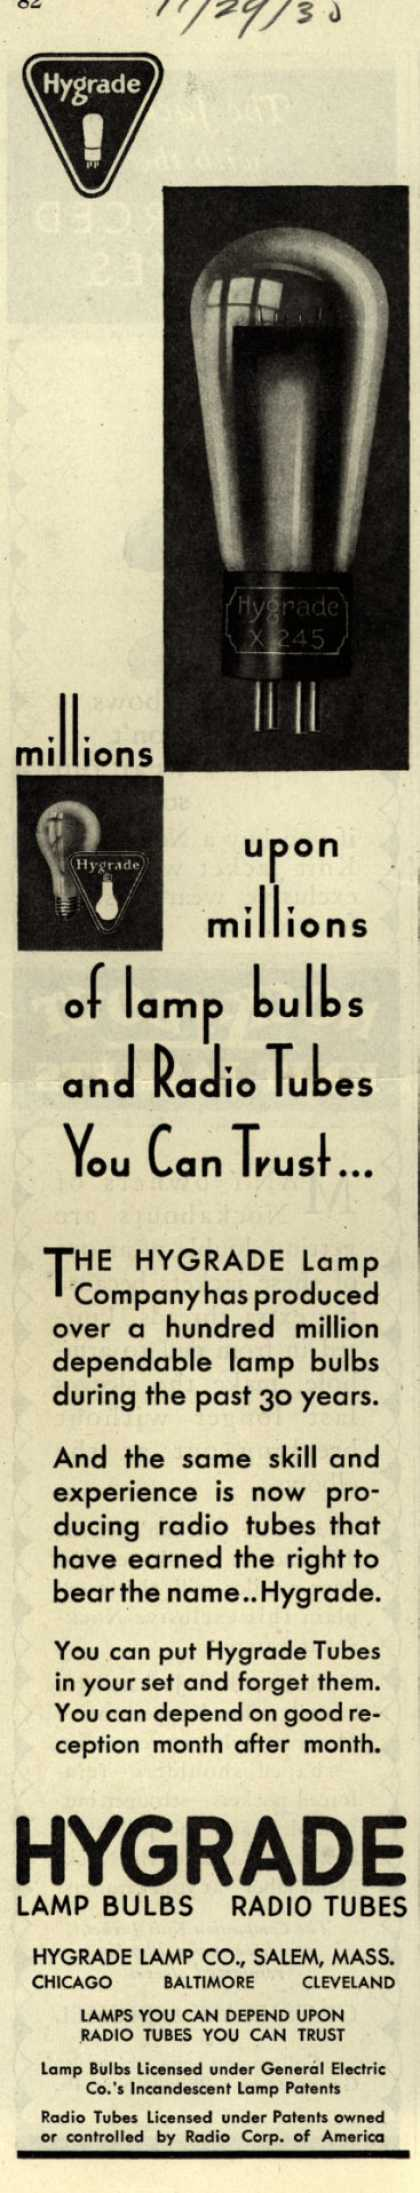 Hygrade Lamp Co.'s Radio Tubes – Millions upon millions of lamp bulbs and Radio Tubes You Can Trust.. (1930)